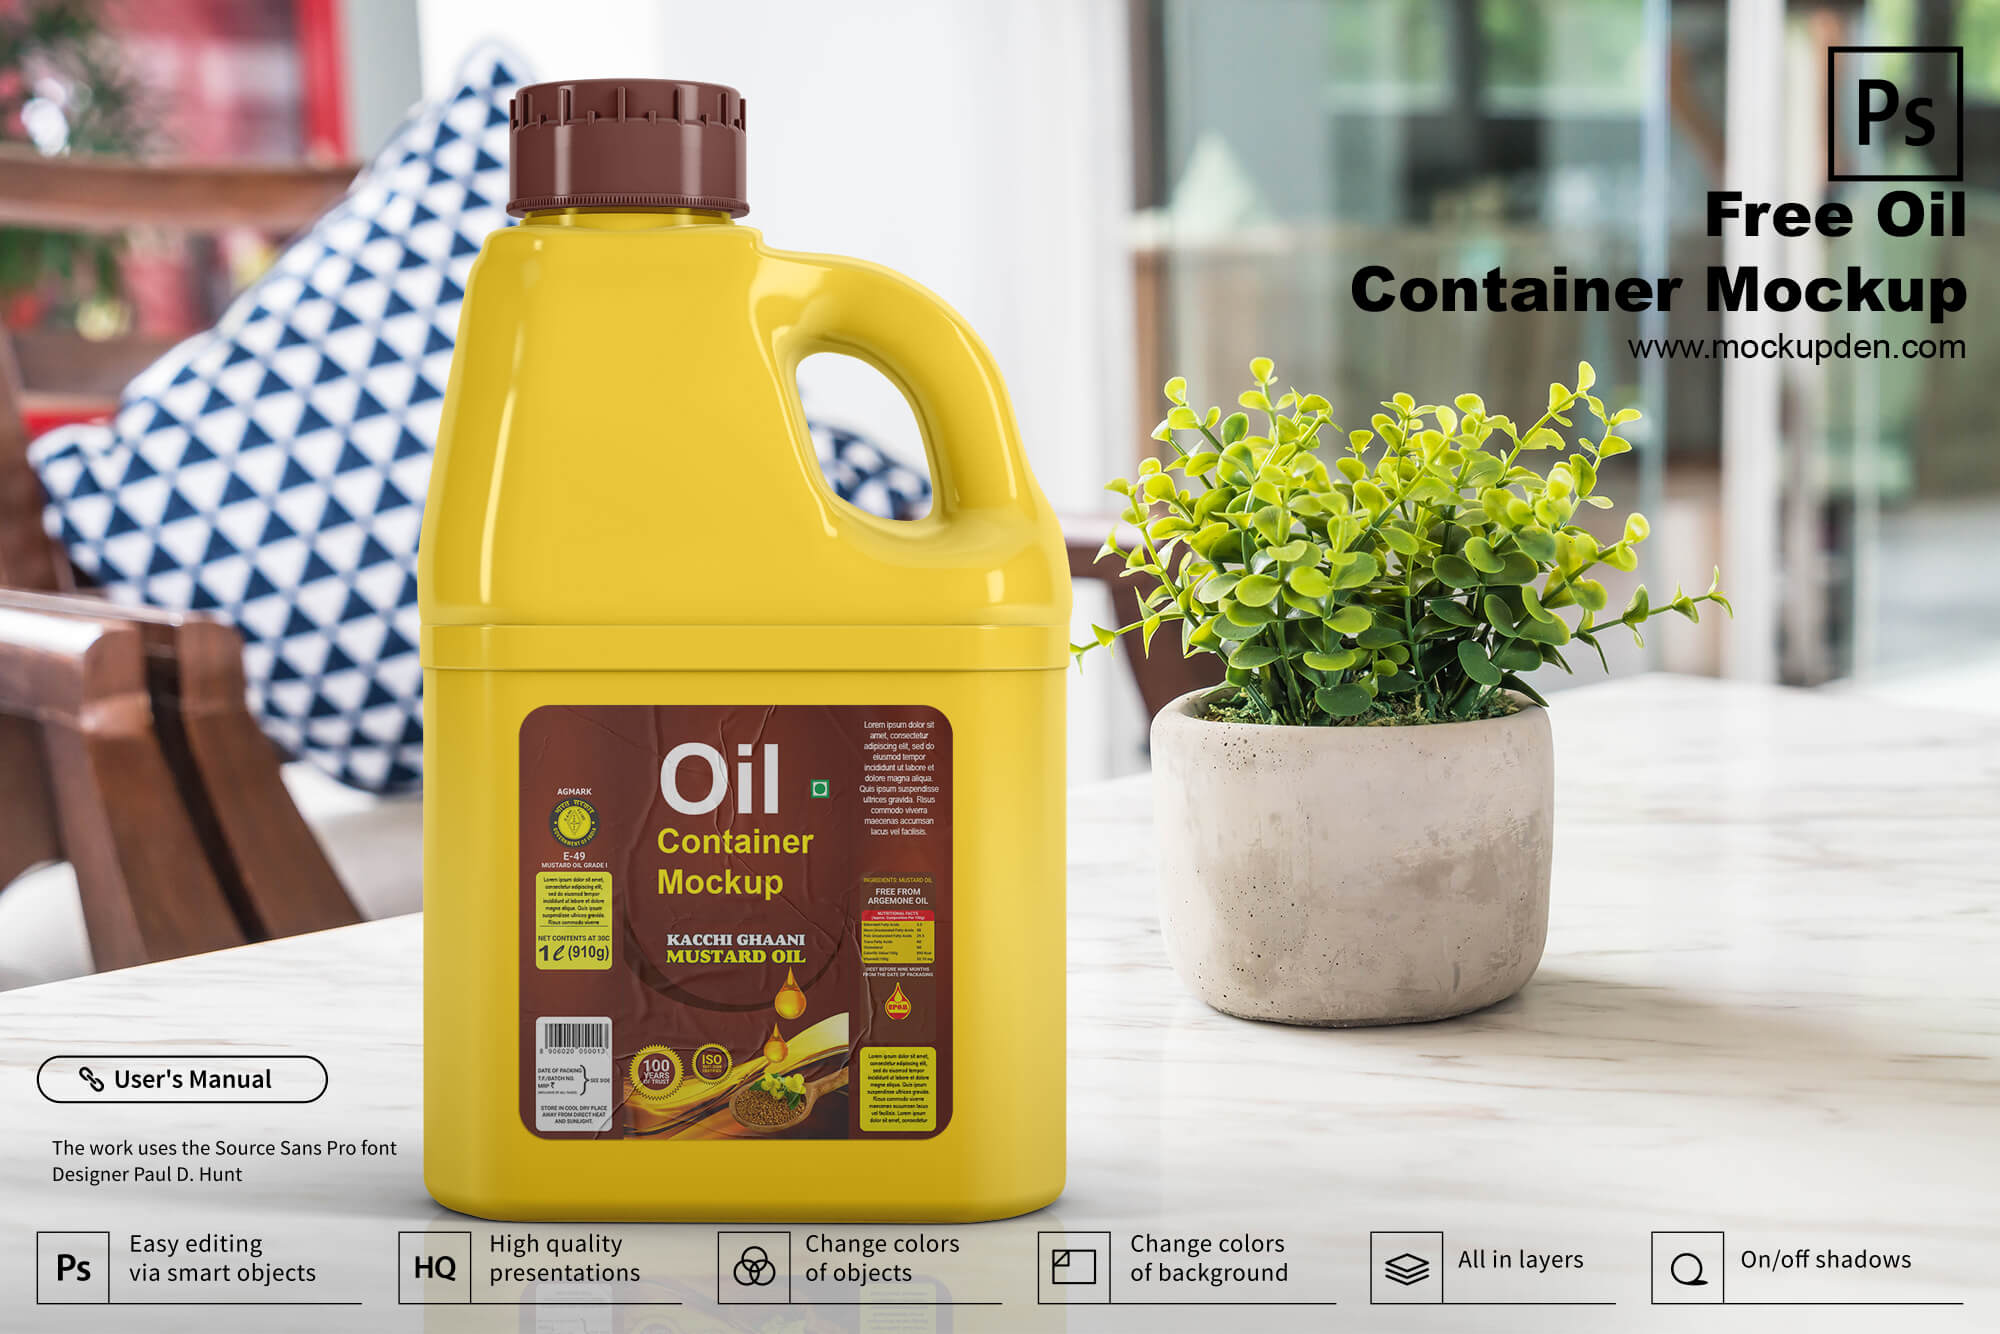 Free Plastic Oil Container Mockup PSD Template